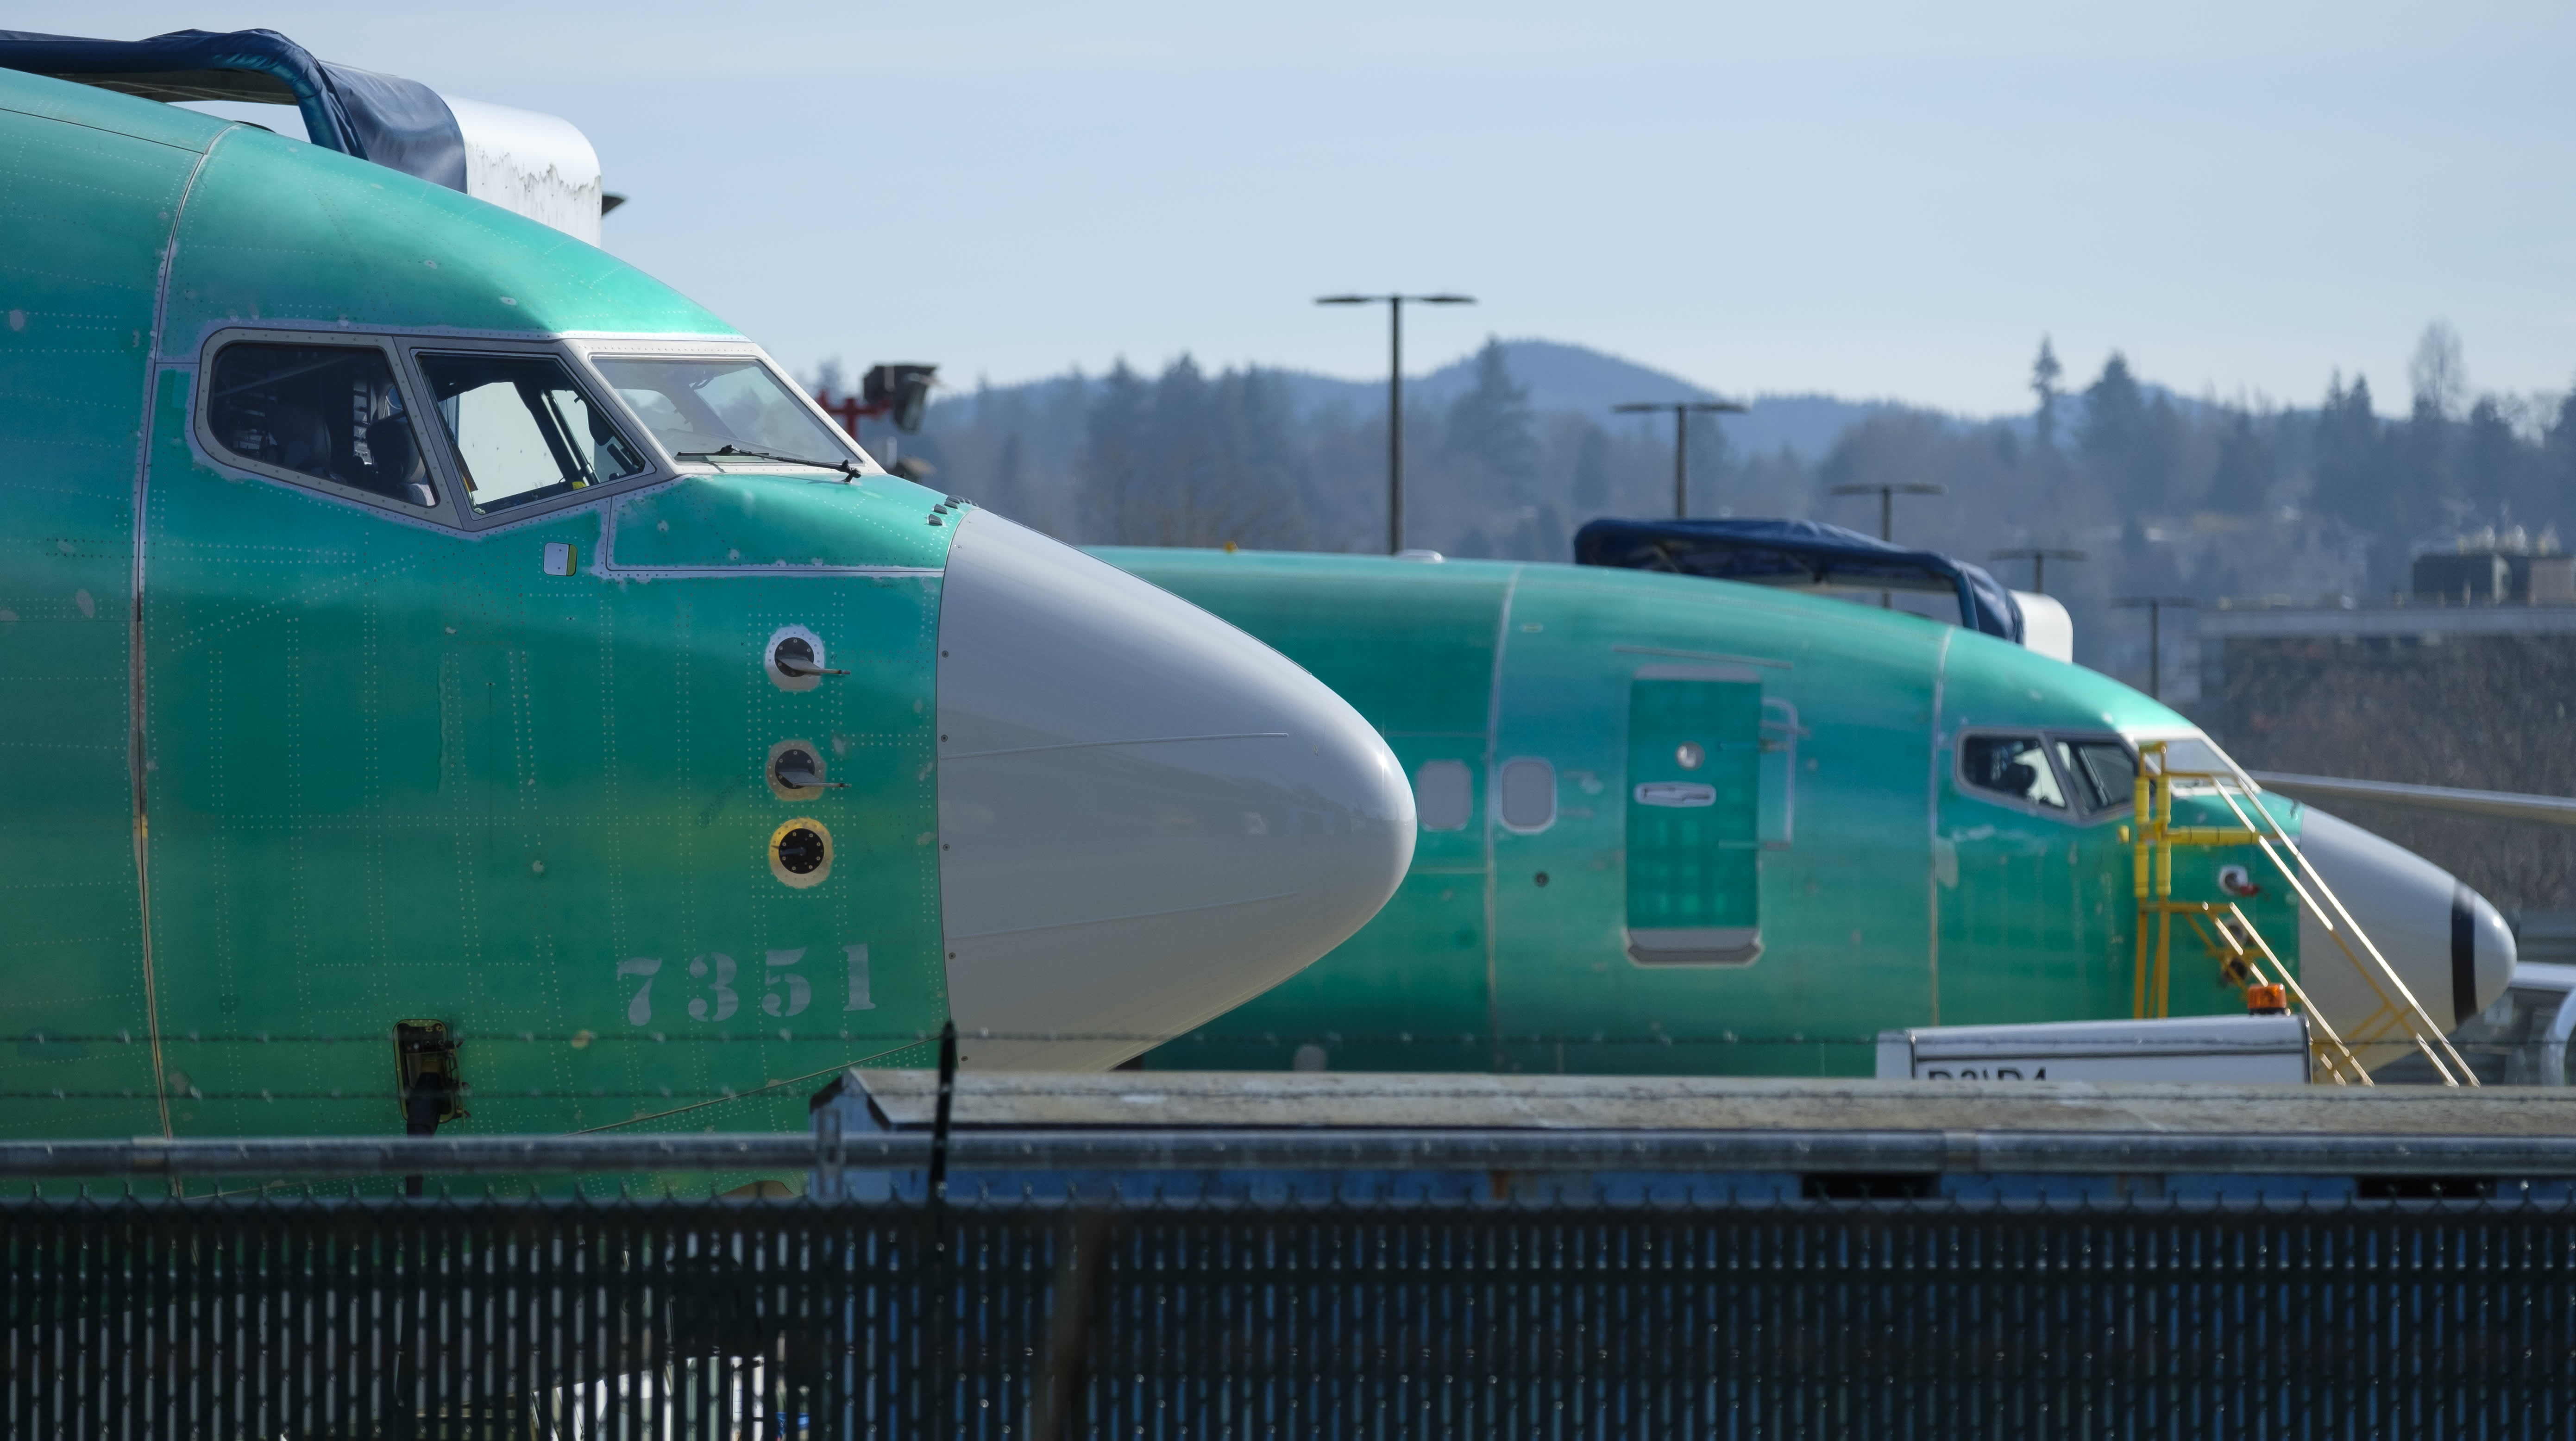 'Miracle on the Hudson' pilot urges simulator training for the Boeing 737 Max